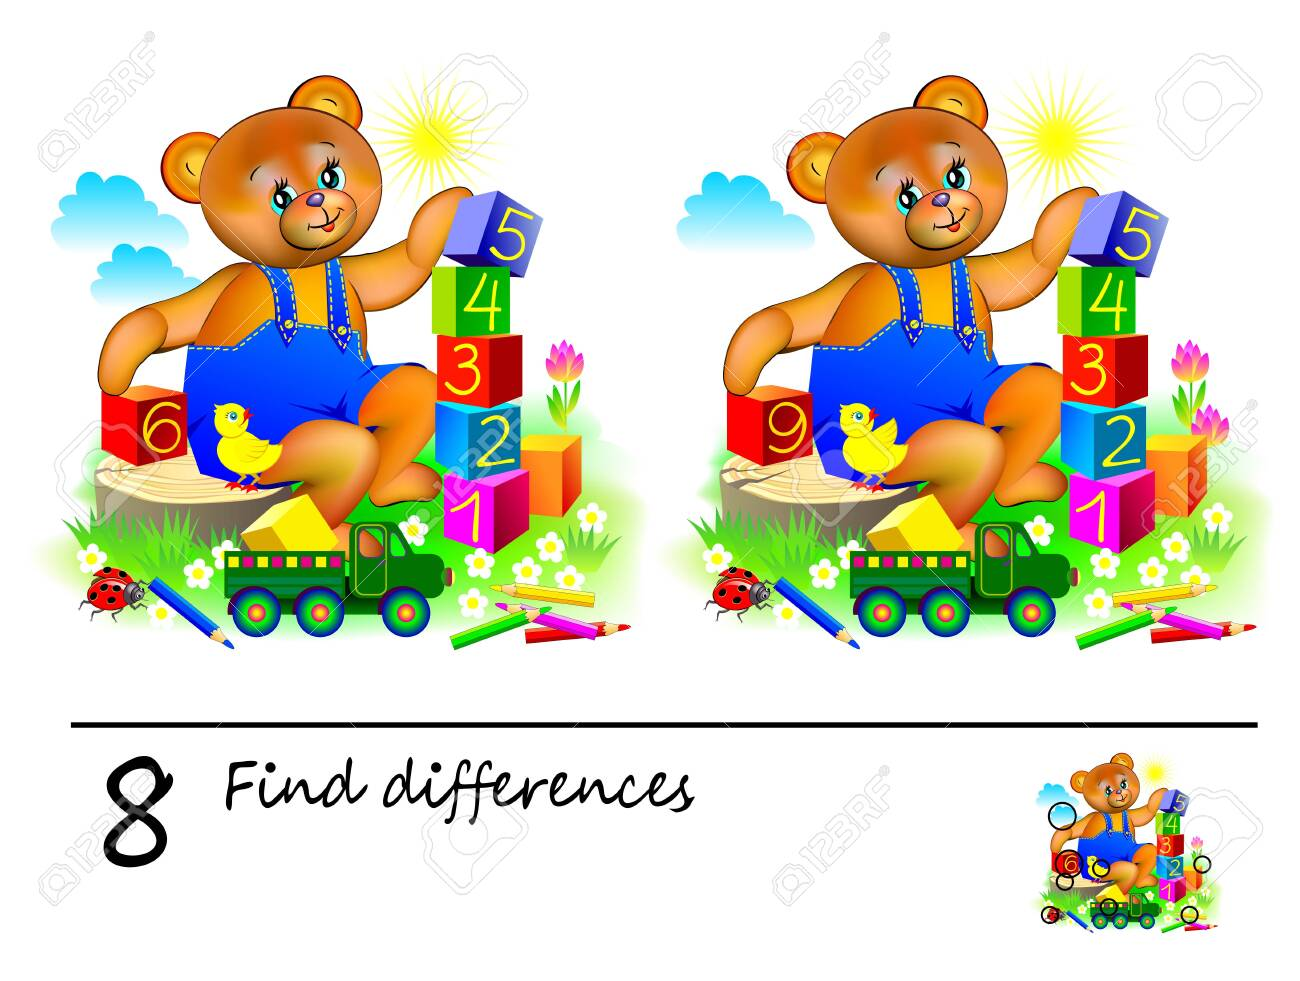 image relating to Find the Differences Printable identified as Logic puzzle sport for small children. Require in direction of identify 8 variances. Printable..